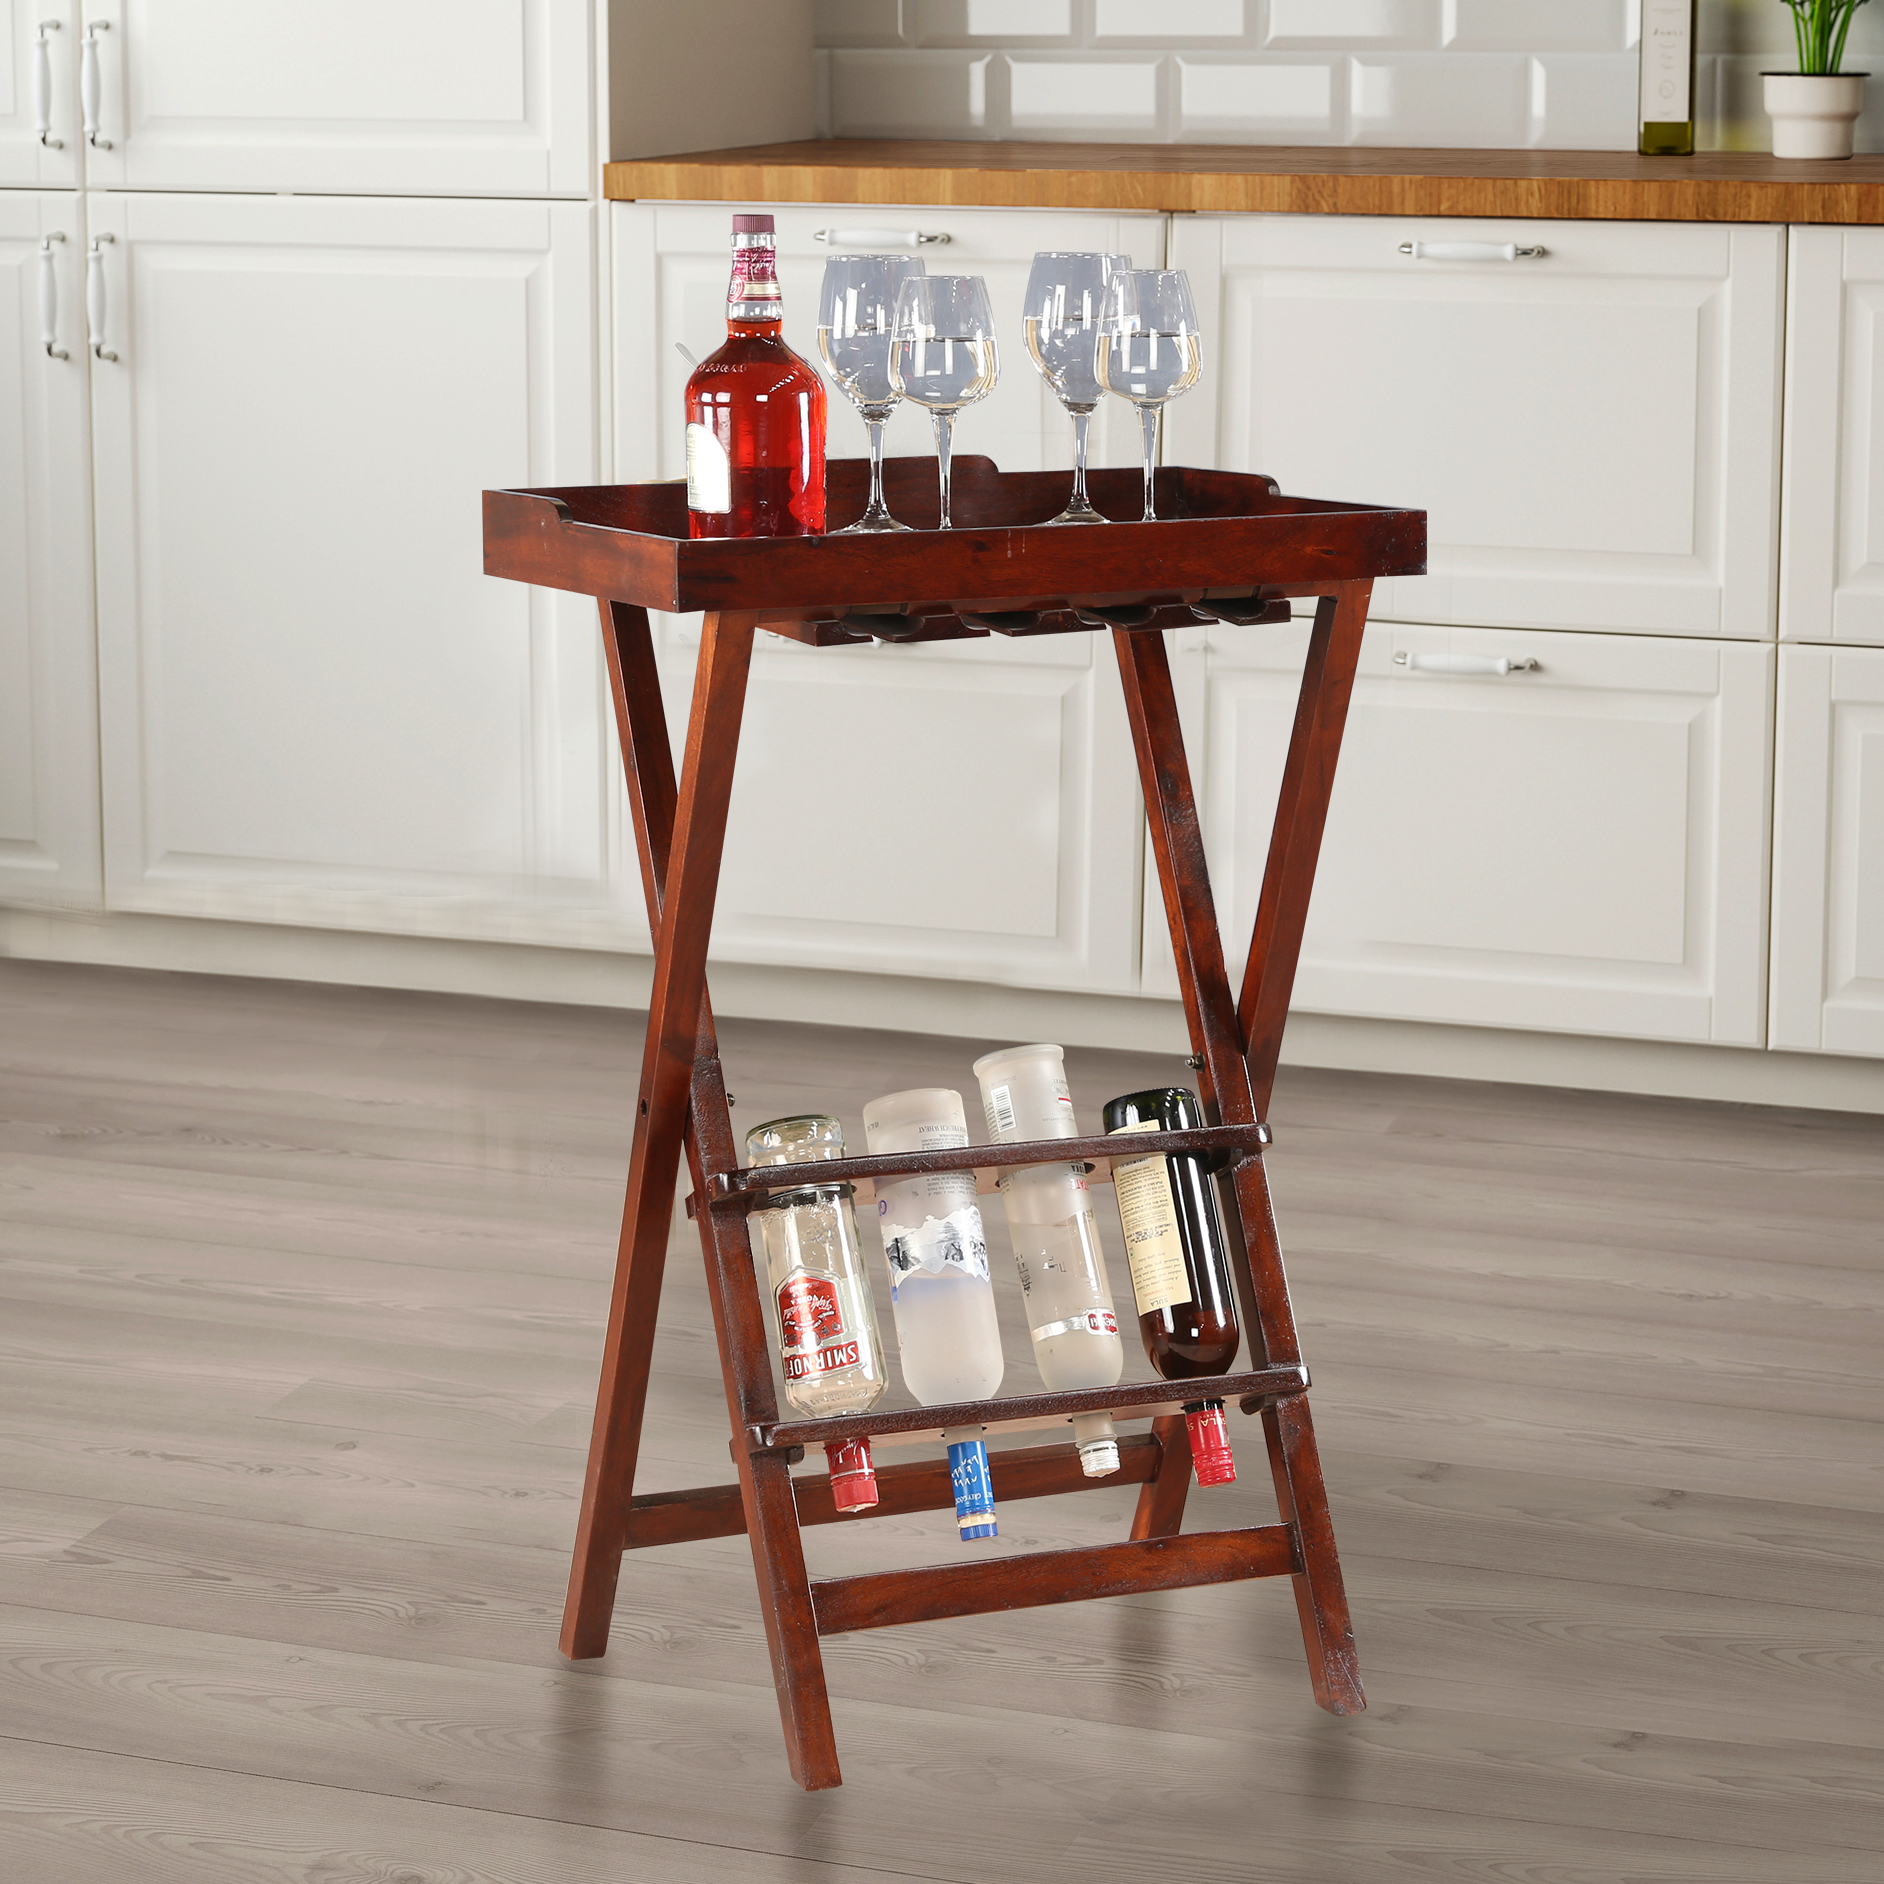 Emilia Solid Wood End Table With Wine Rack in Chest Nut Colour by HomeTown